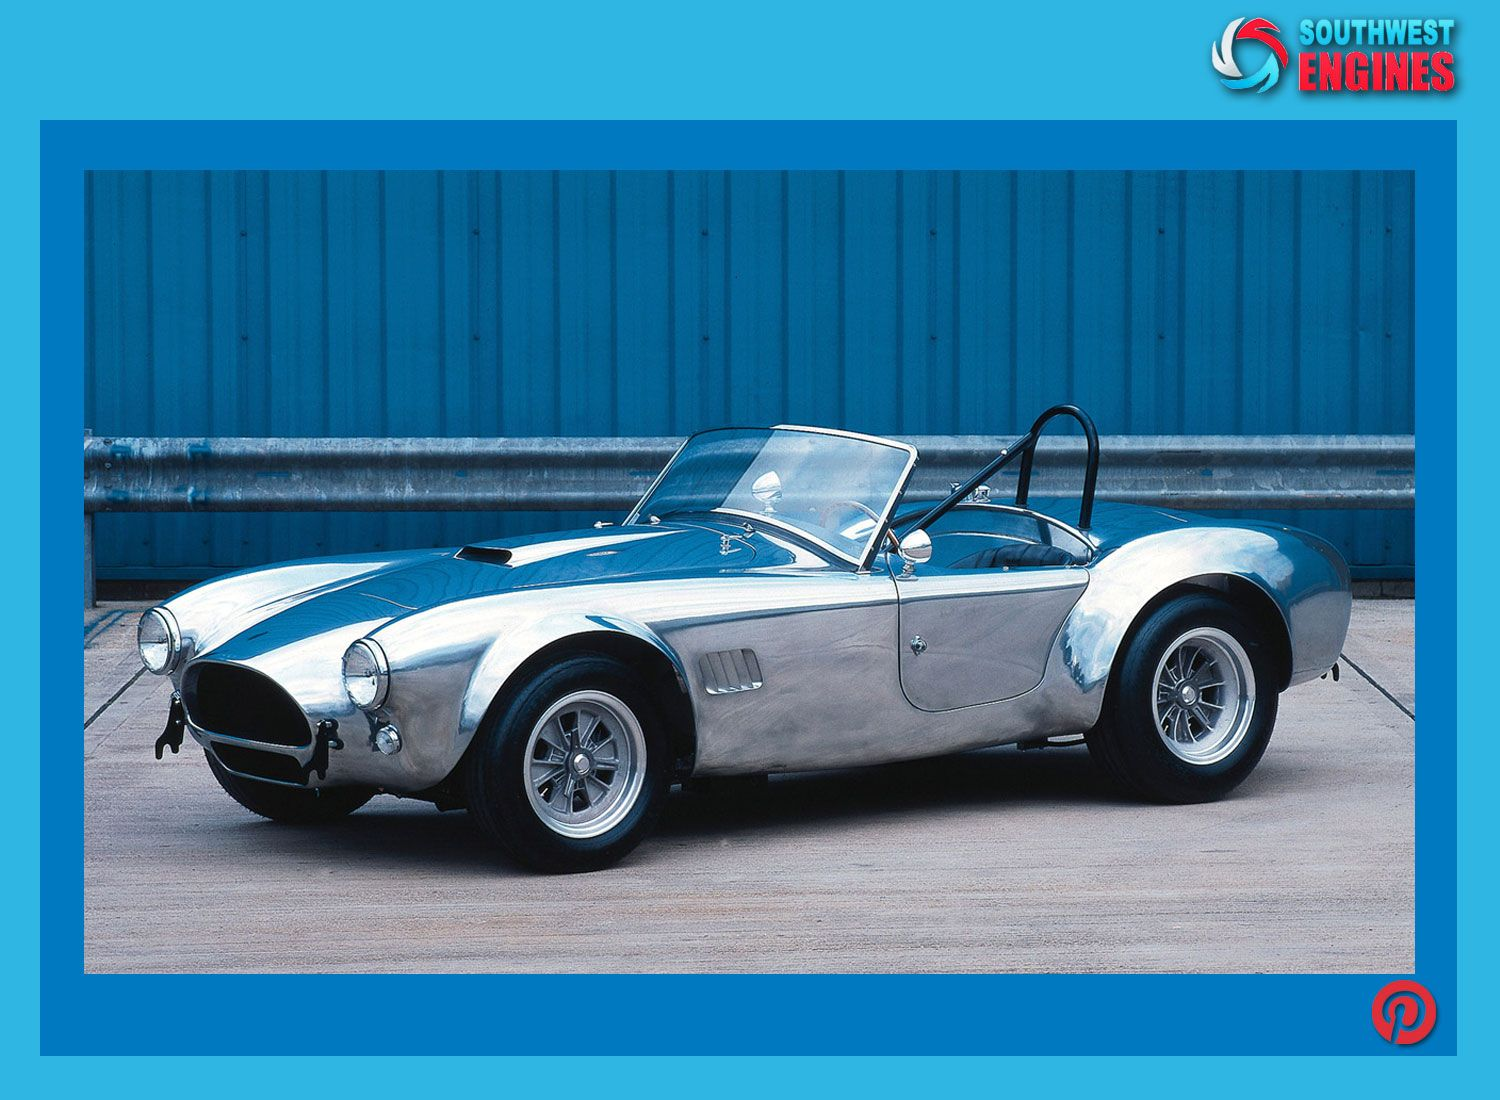 Check this adorable white and bluegreen AC Cobra.